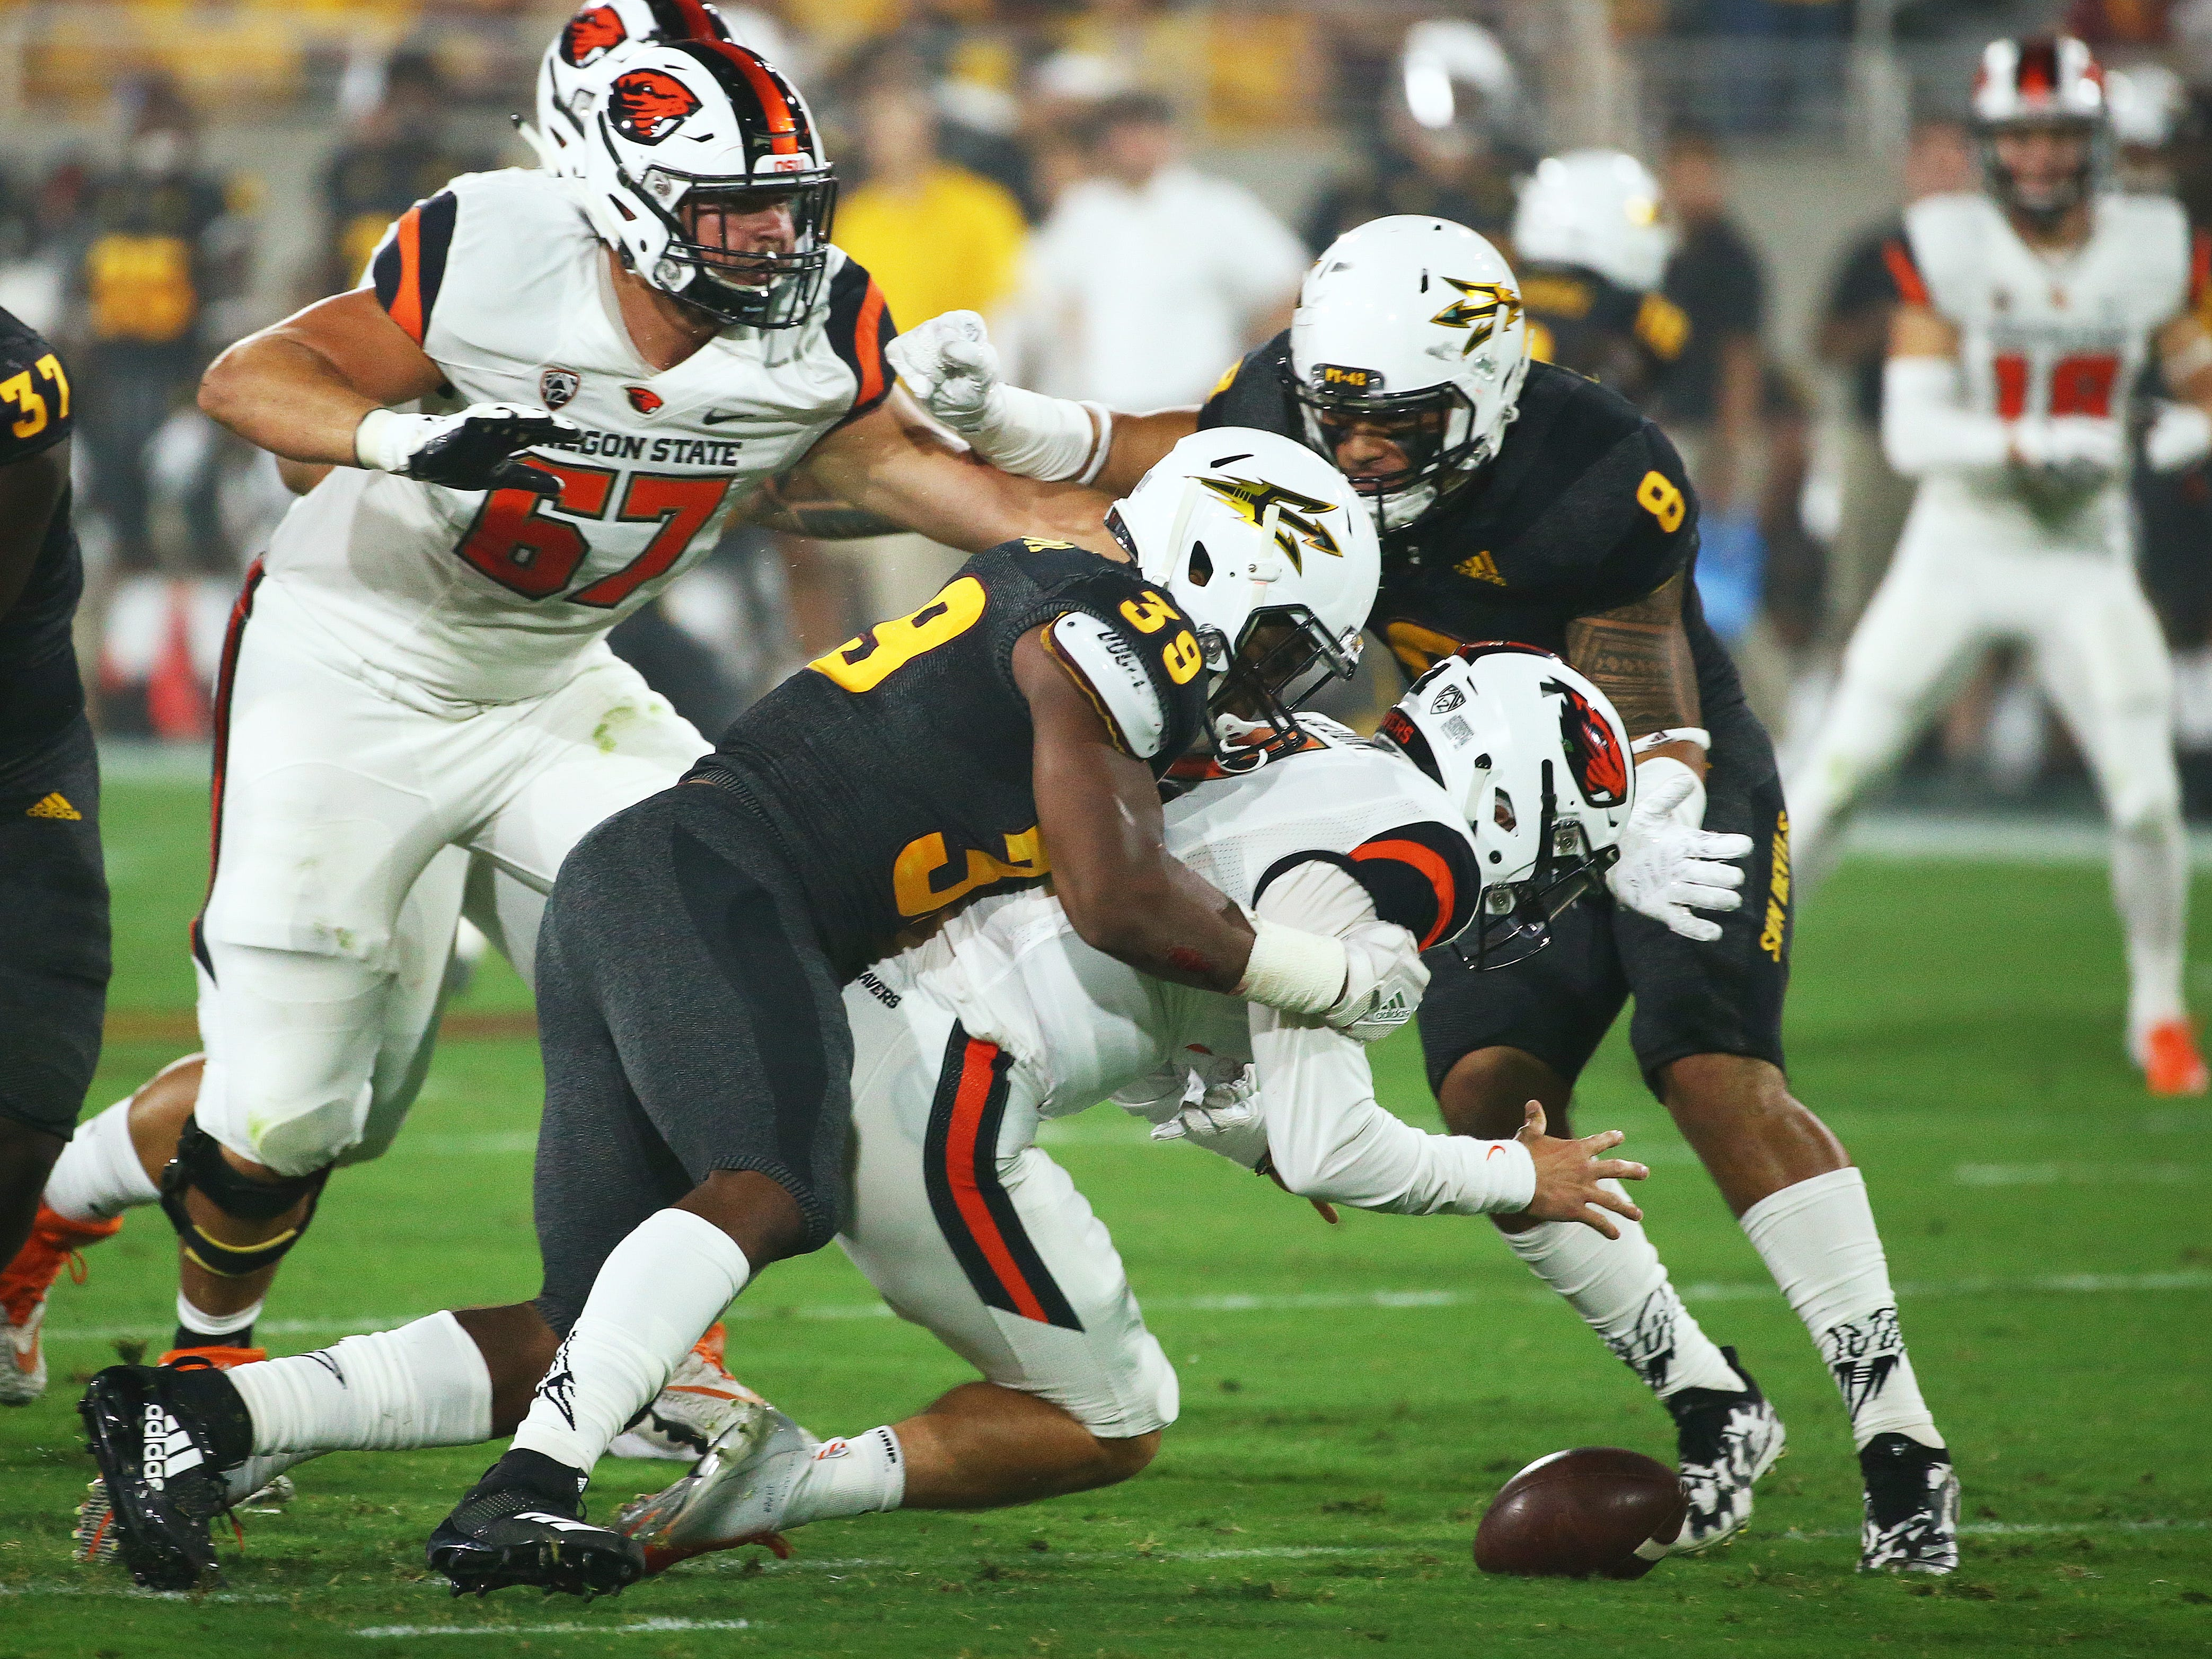 Arizona State linebacker Malik Lawal forces a fumble by Oregon State quarterback Conor Blount in the first half on Sep. 29, 2018, at Sun Devil Stadium. Oregon State recovered the ball.